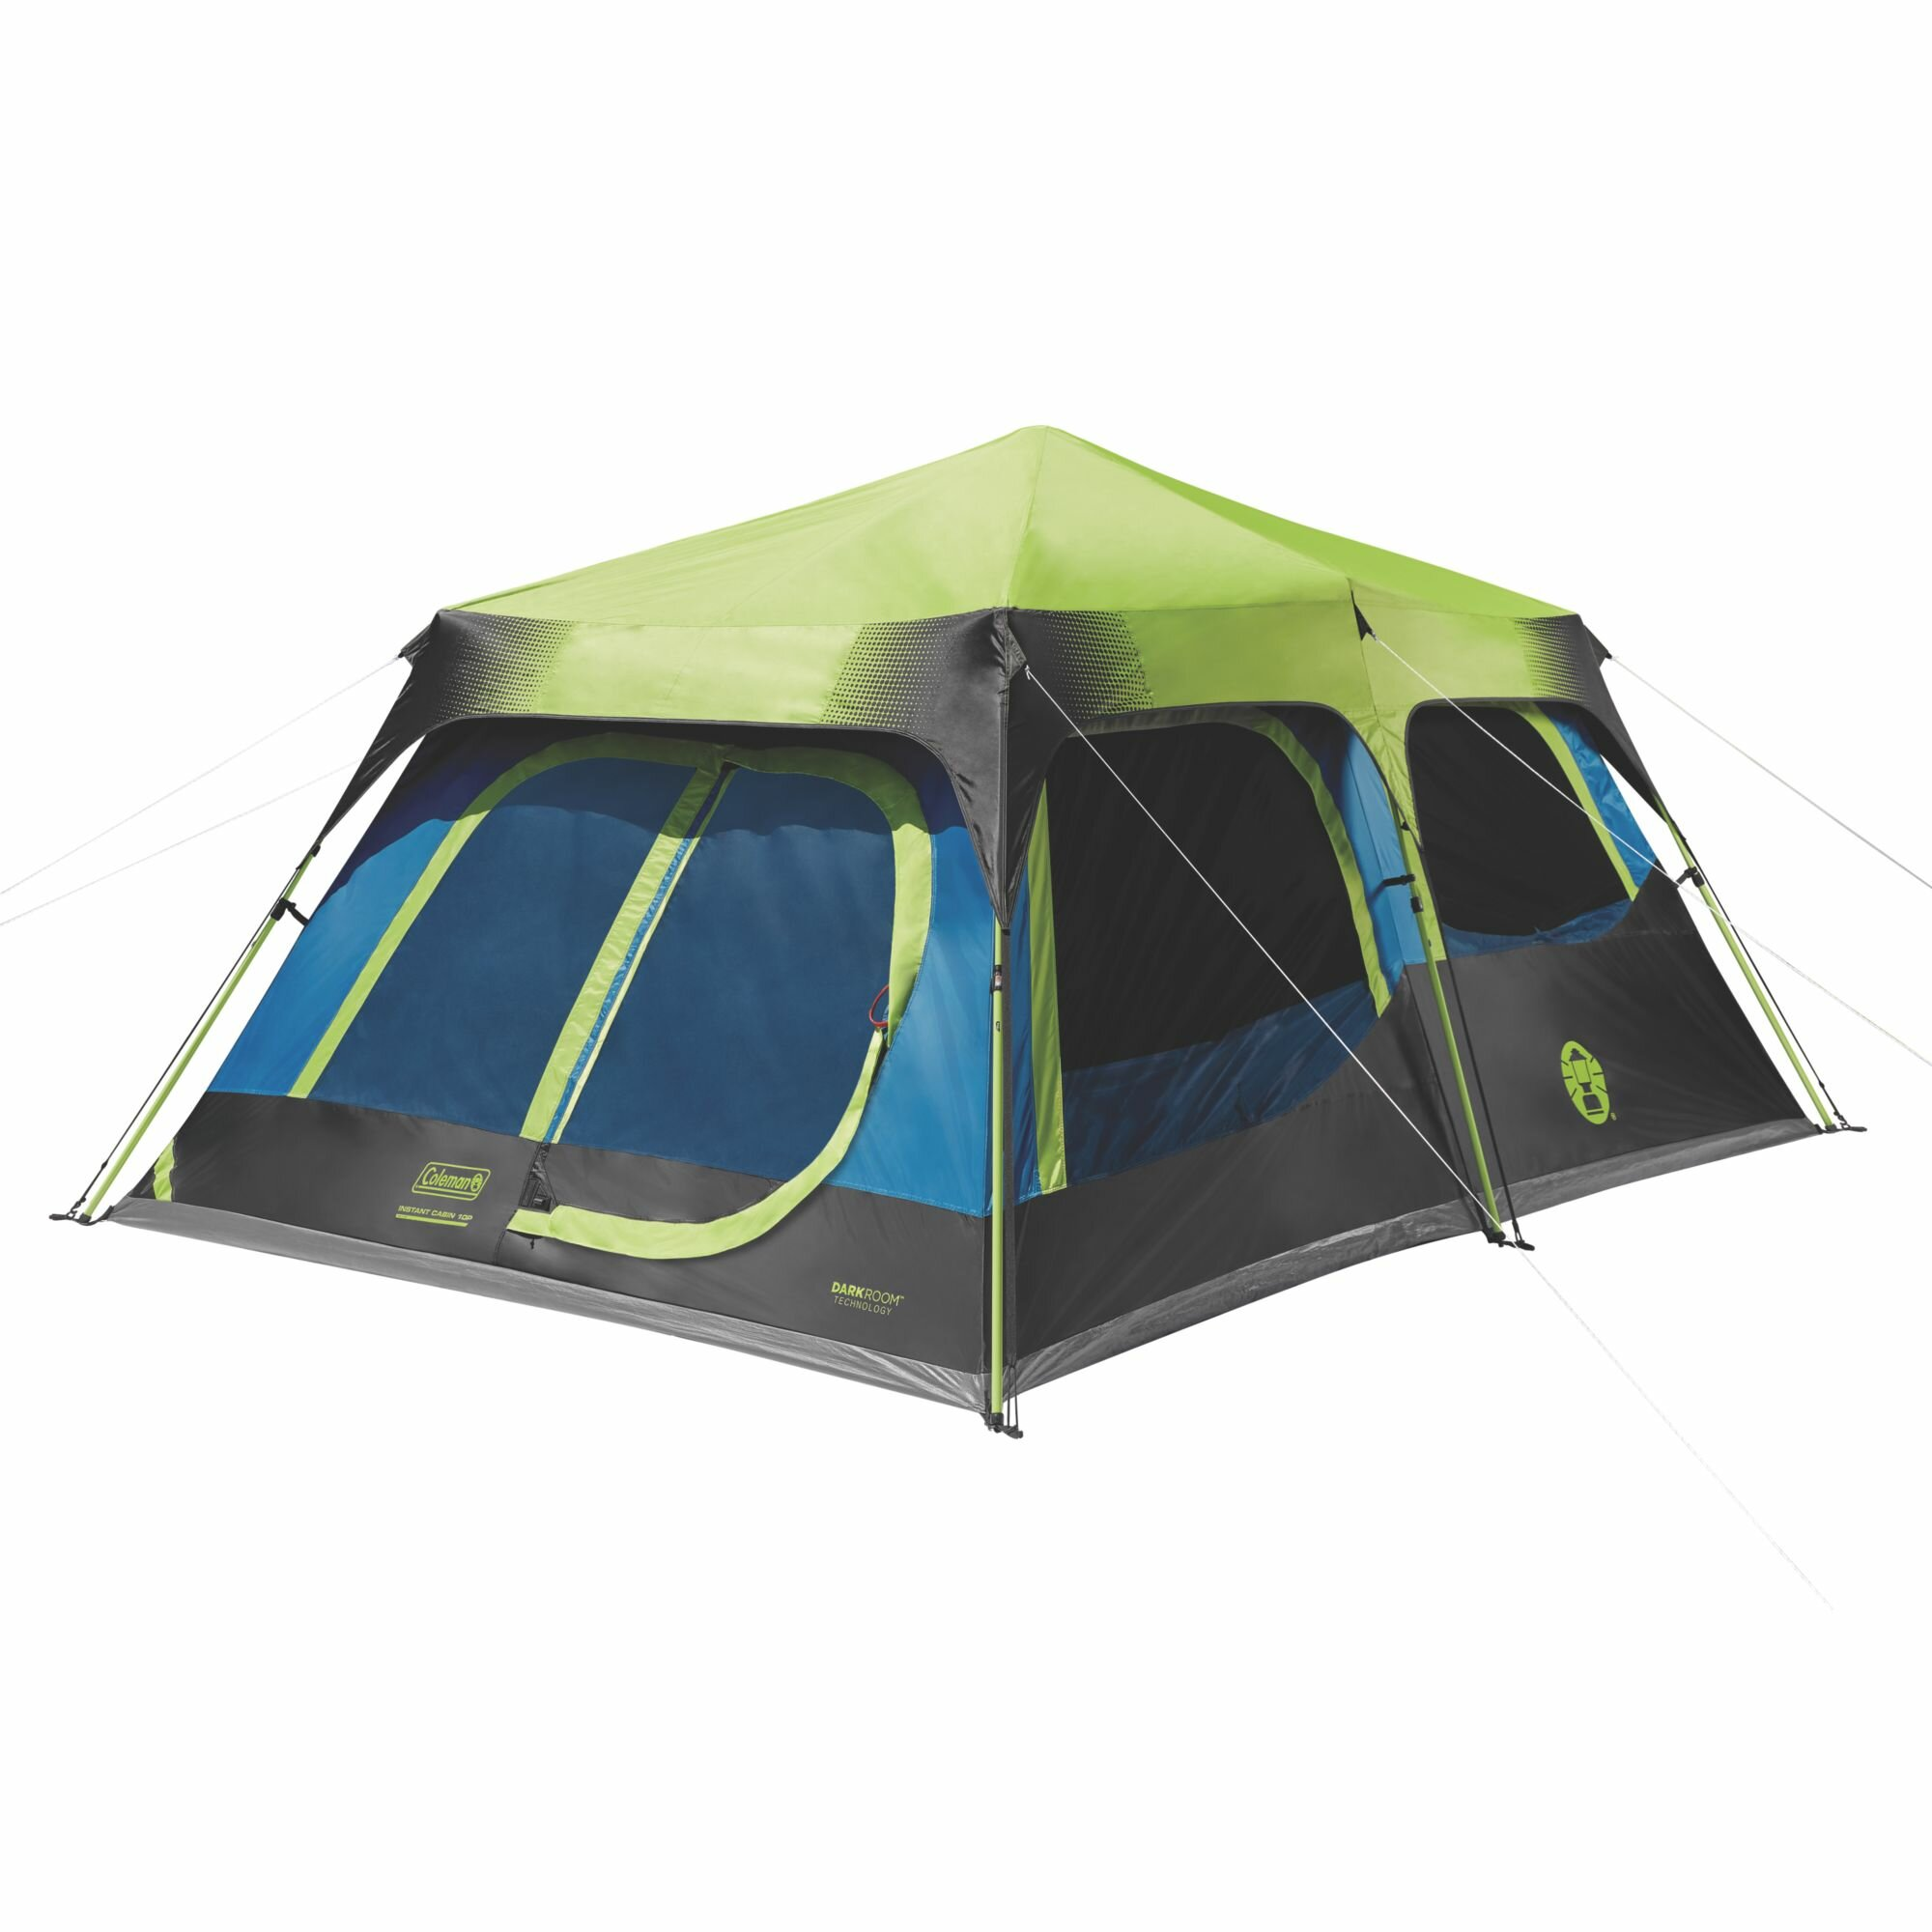 10-Person Family Camping Tent 3-Room Cabin With 2 Side Entrances Outdoor Hiking